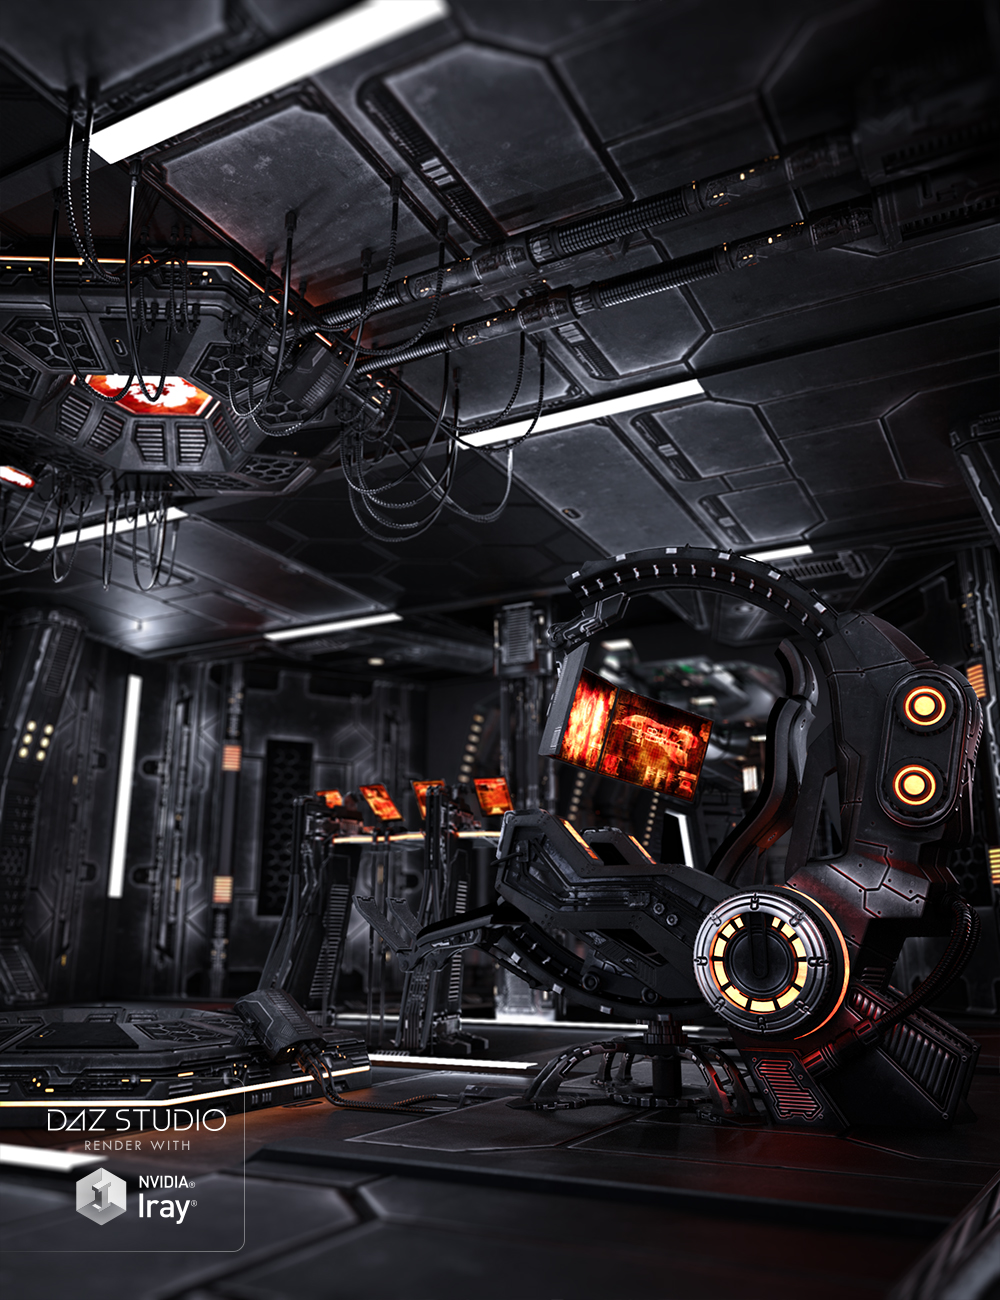 Marcoor Control Room Aged by: Ravnheart, 3D Models by Daz 3D